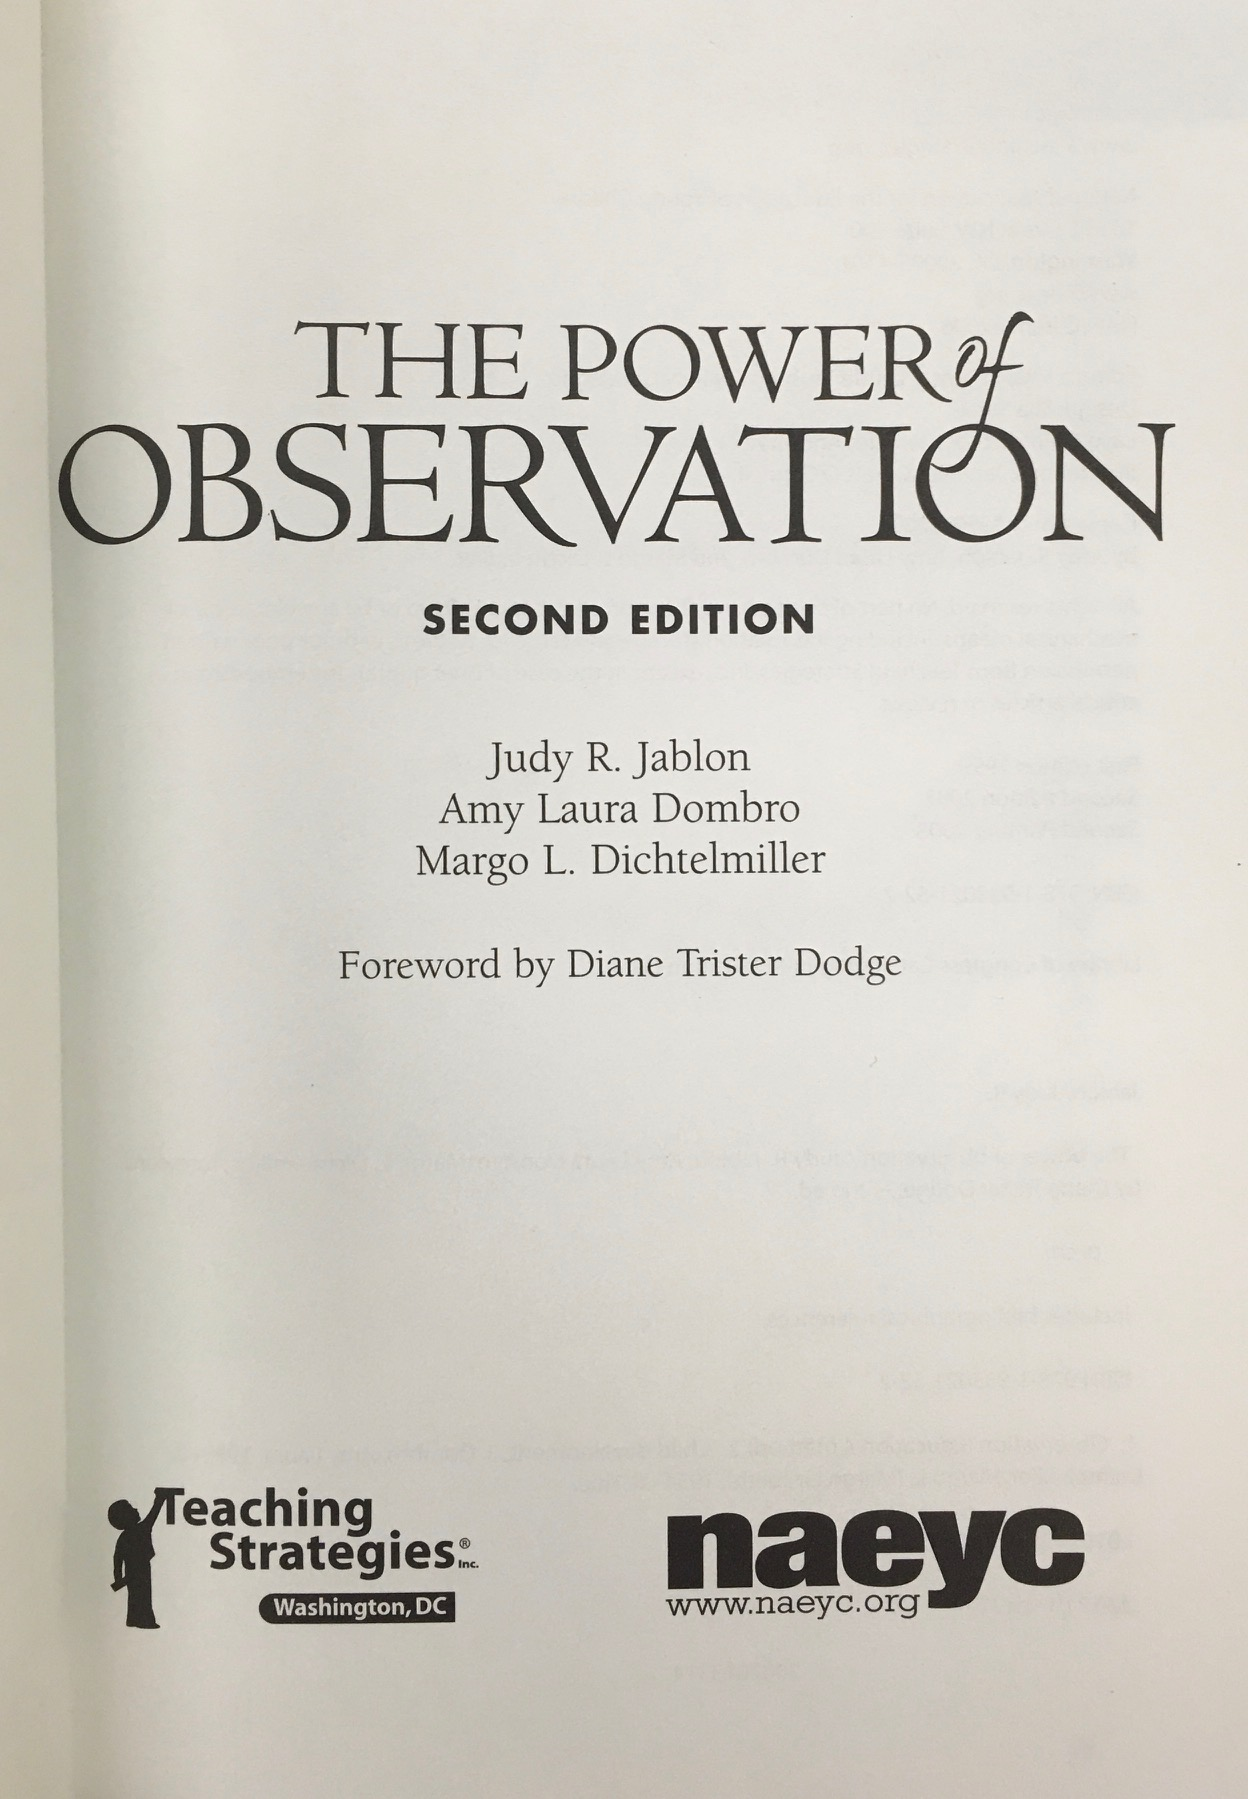 Image for The Power of Observation from Birth Through Eight